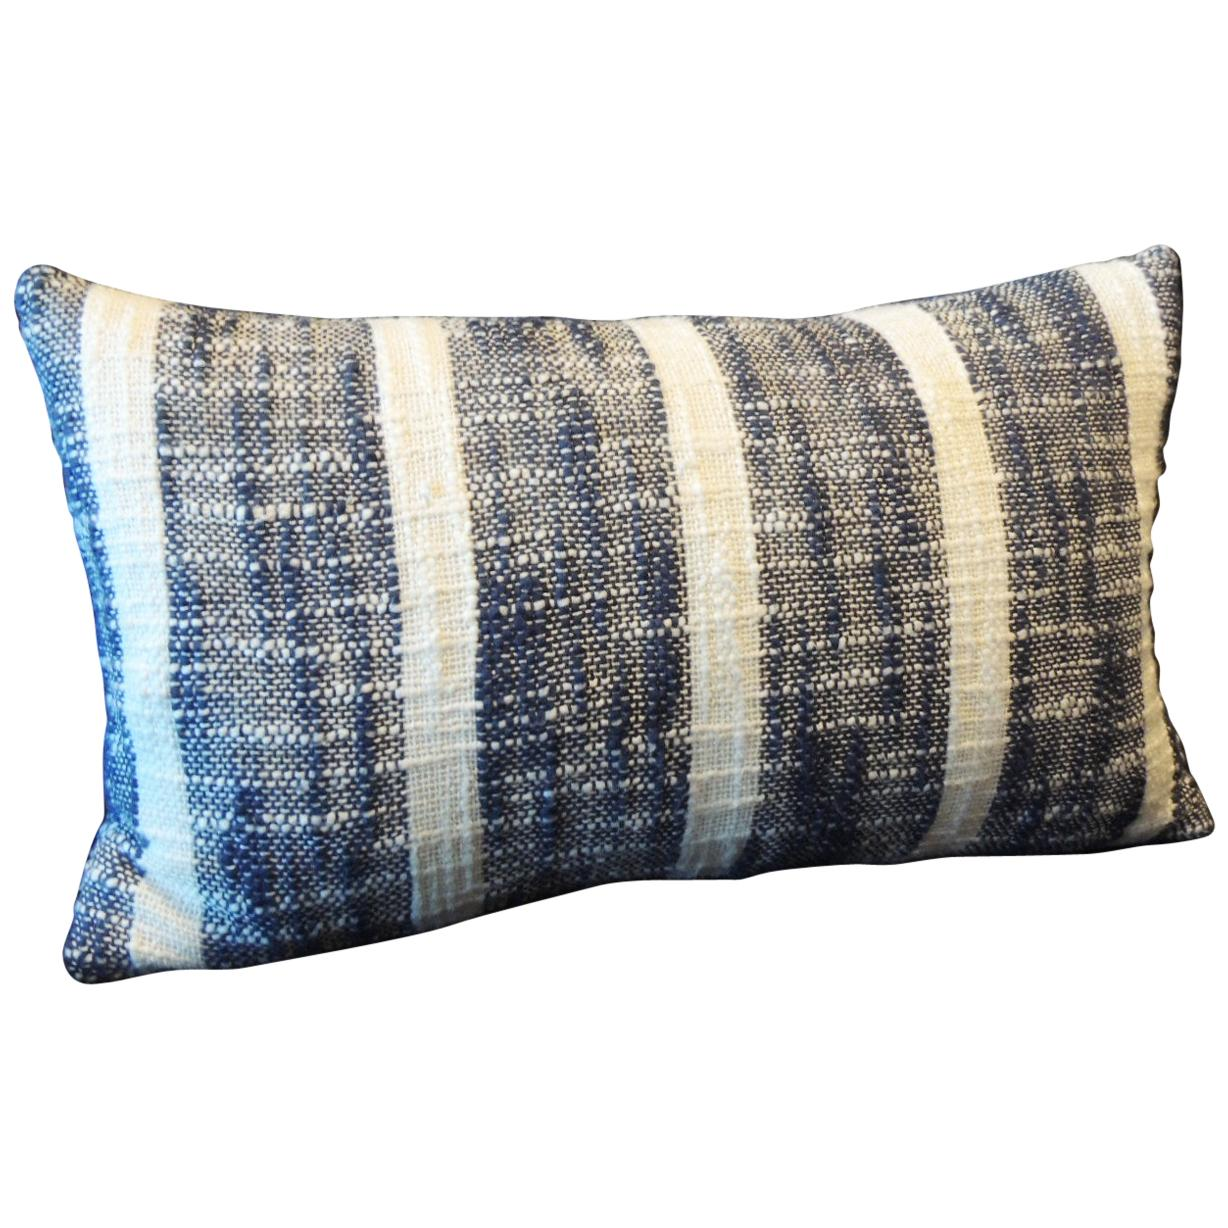 Vintage Indian Woven Blue and White Stripes Petite Lumbar Decorative Pillow